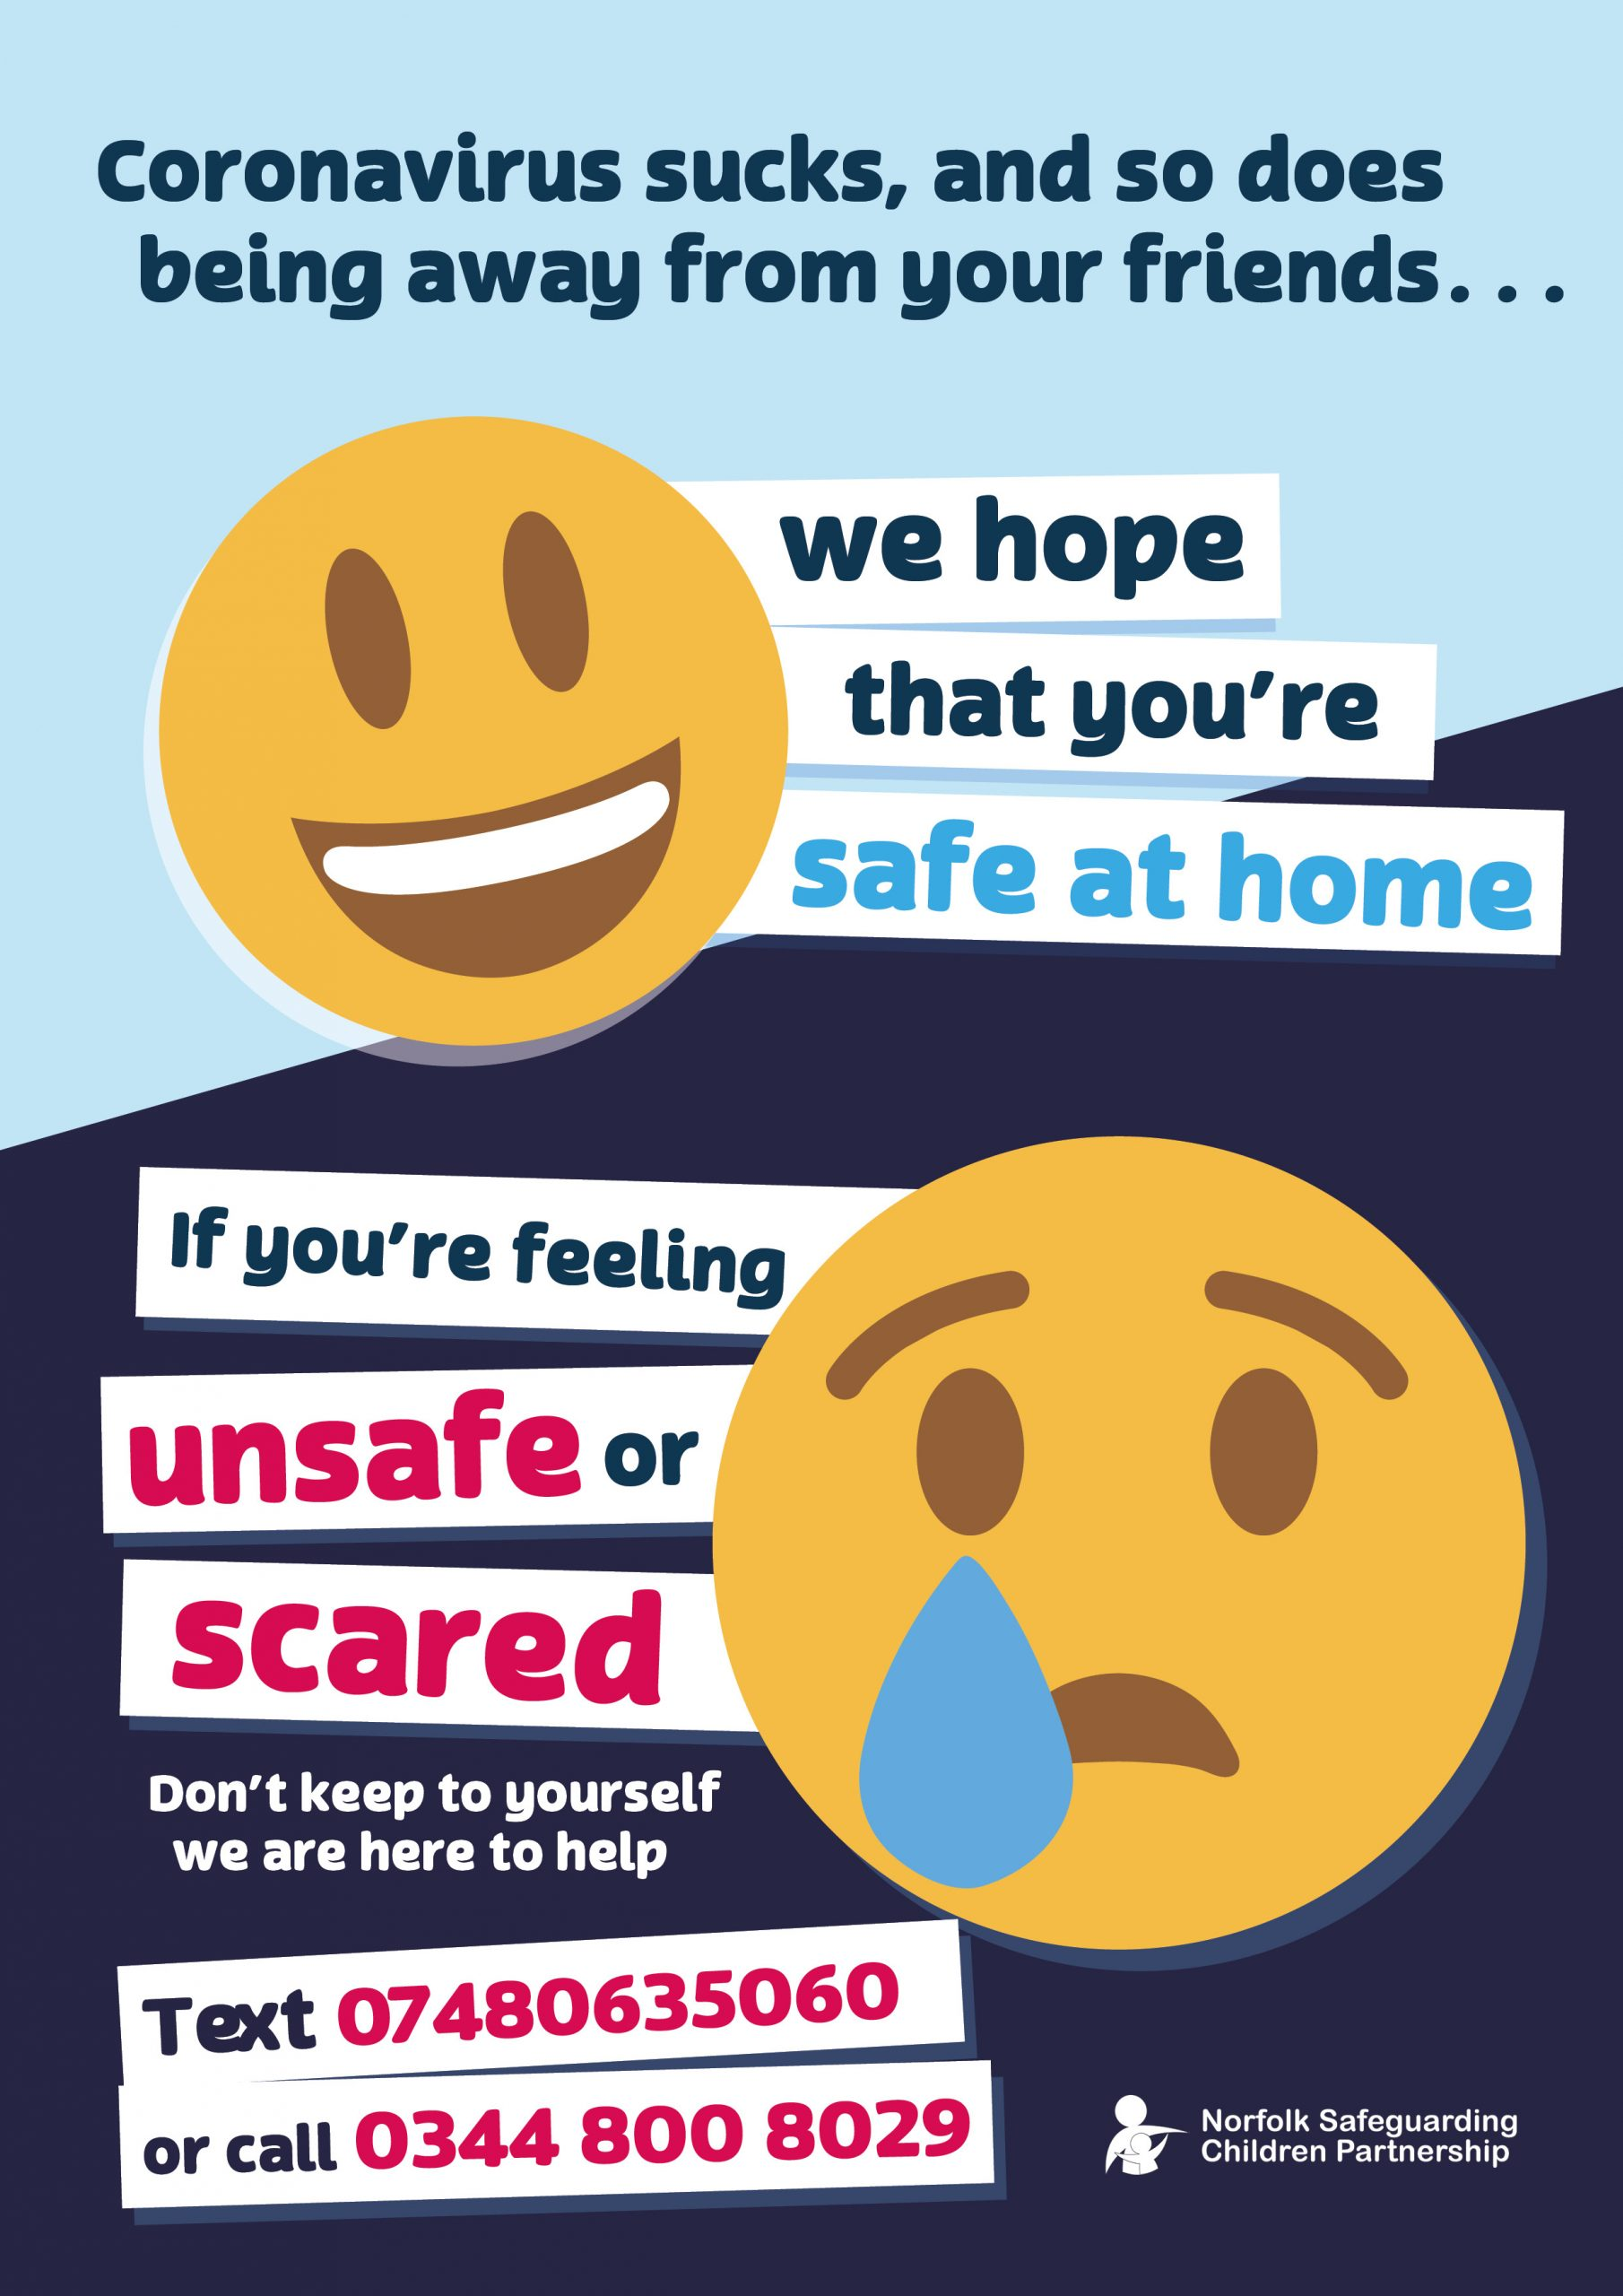 We hope that you're safe at home…..